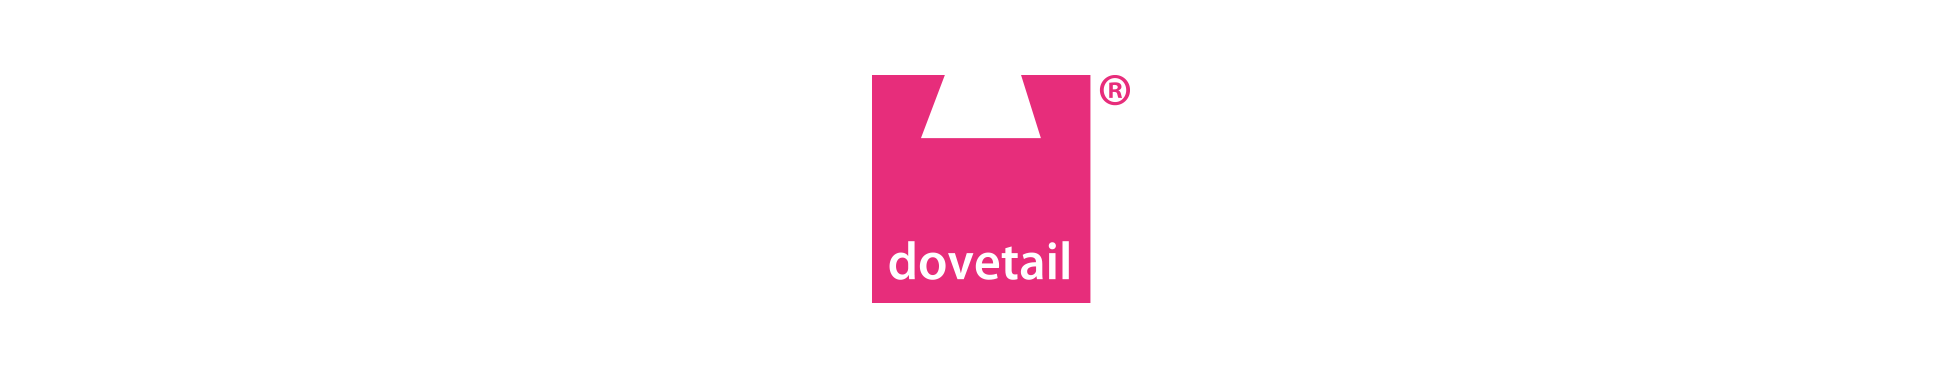 Dovetail name Bopgun as their creative agency partner